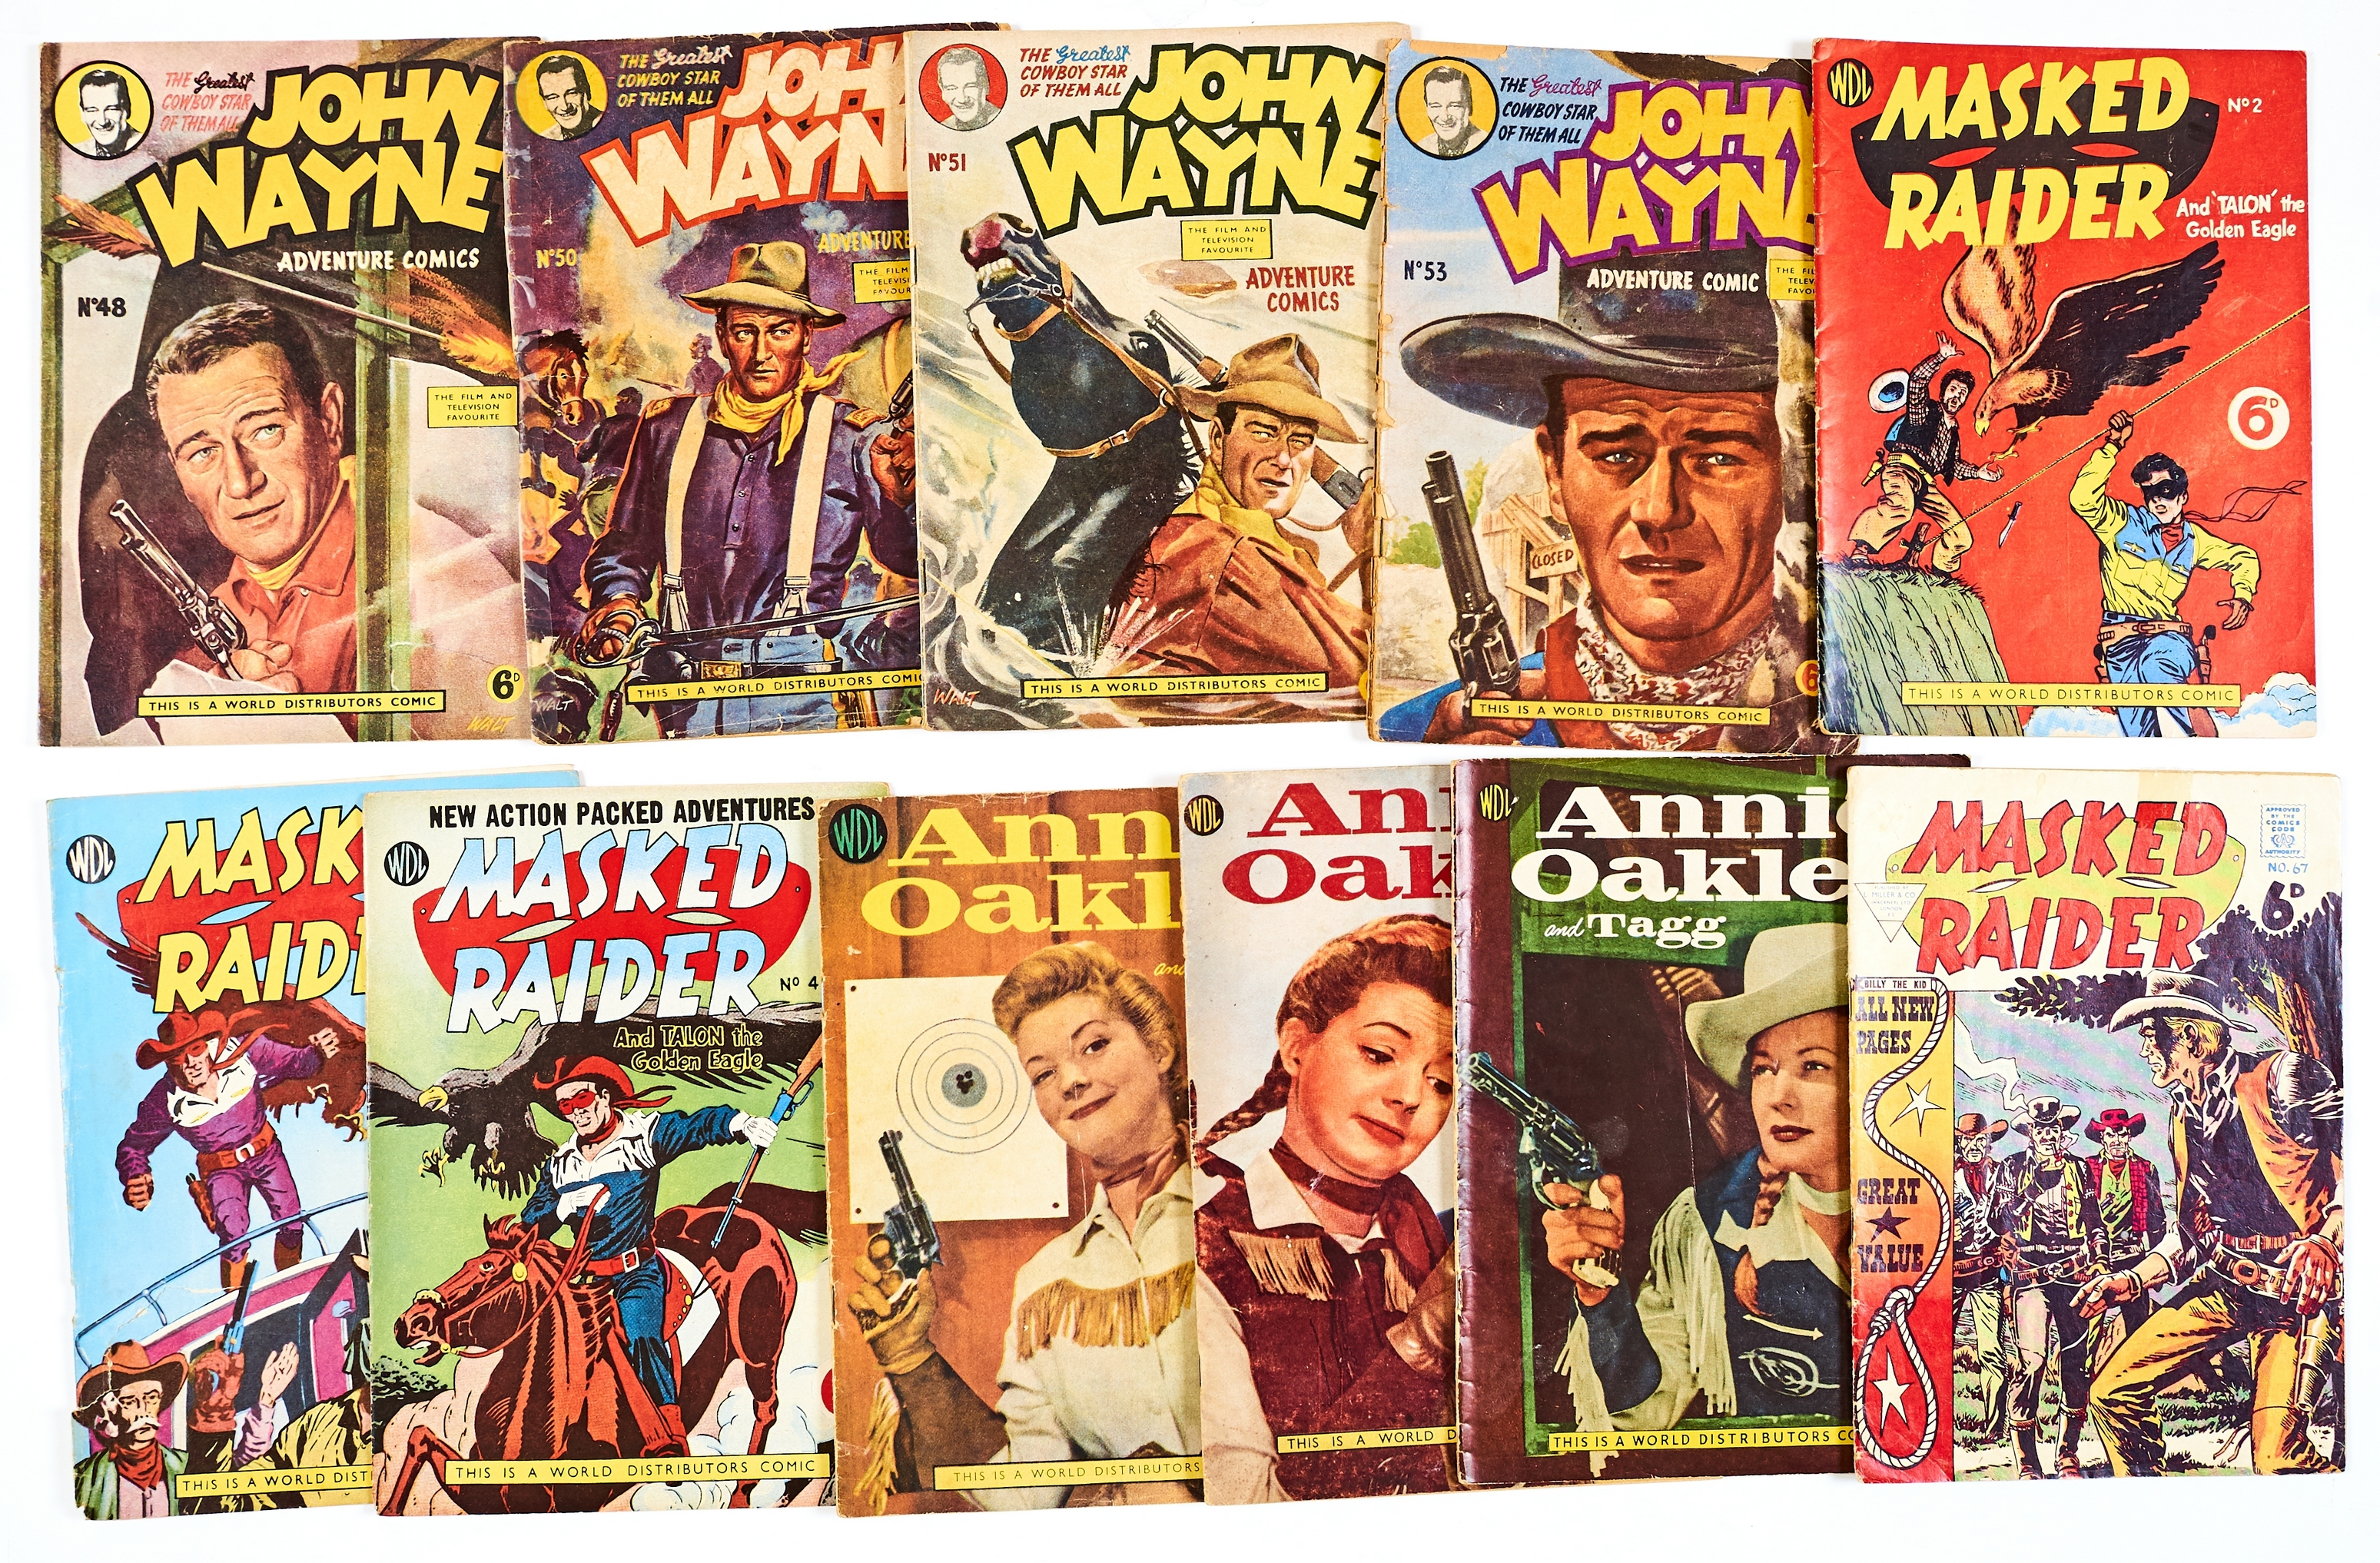 Lot 56 - John Wayne Adventure Comics (1950s WDL) 48, 50, 51, 53. With Masked Raider 2, 3, 4, 67 and Annie